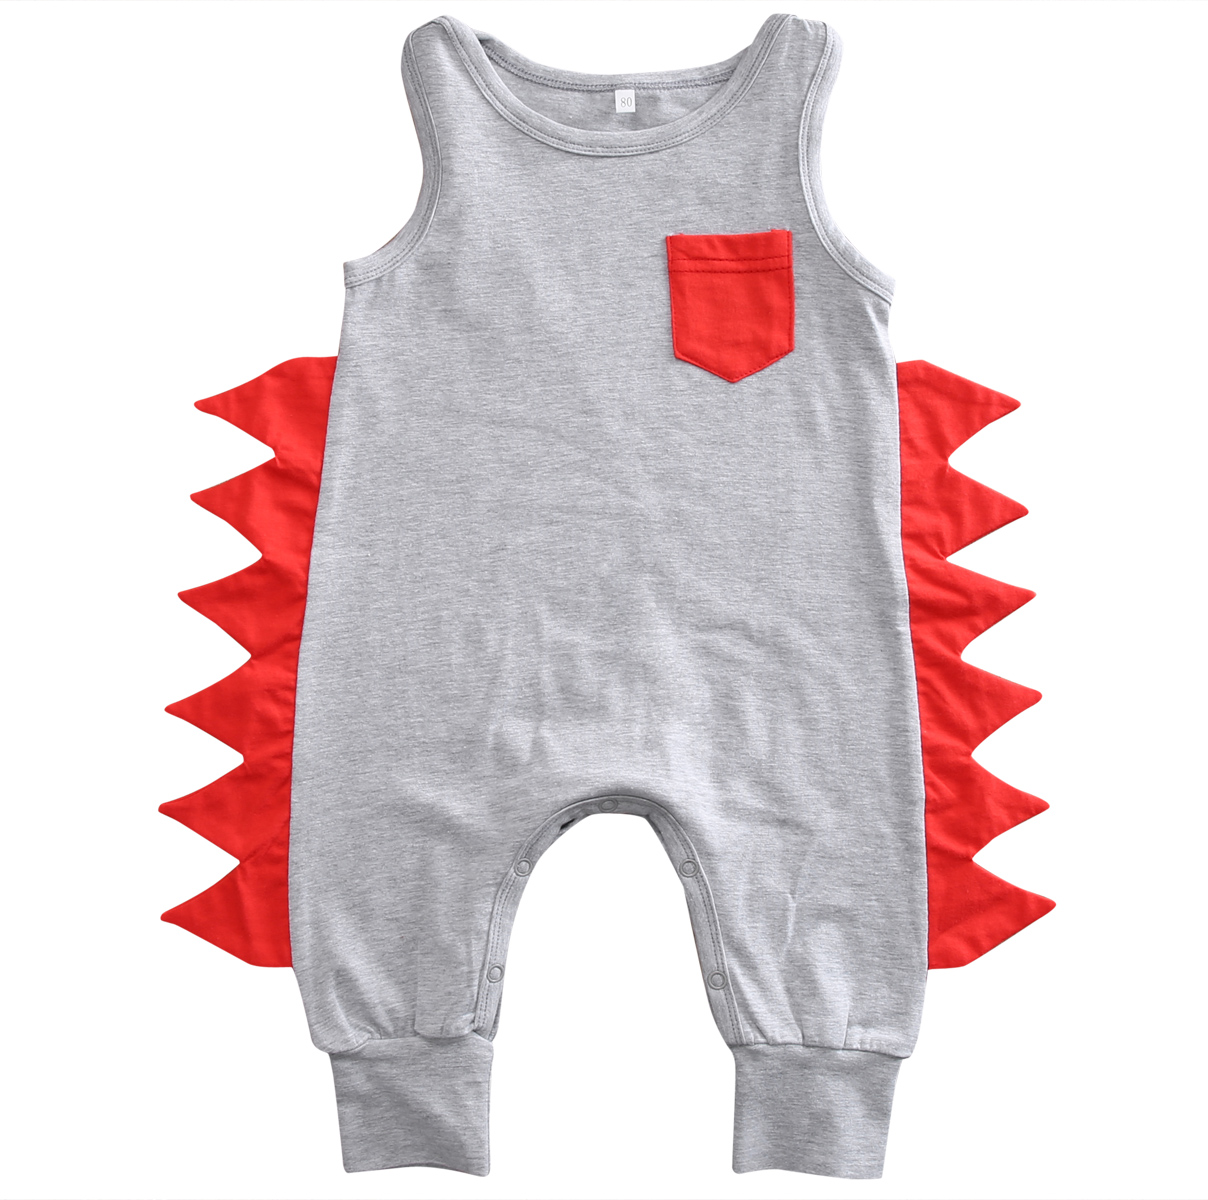 Cotton Dinosaur Romper Baby Clothes Newborn Baby Boy Sleeveless Romper Jumpsuit Playsuit Outfit ...